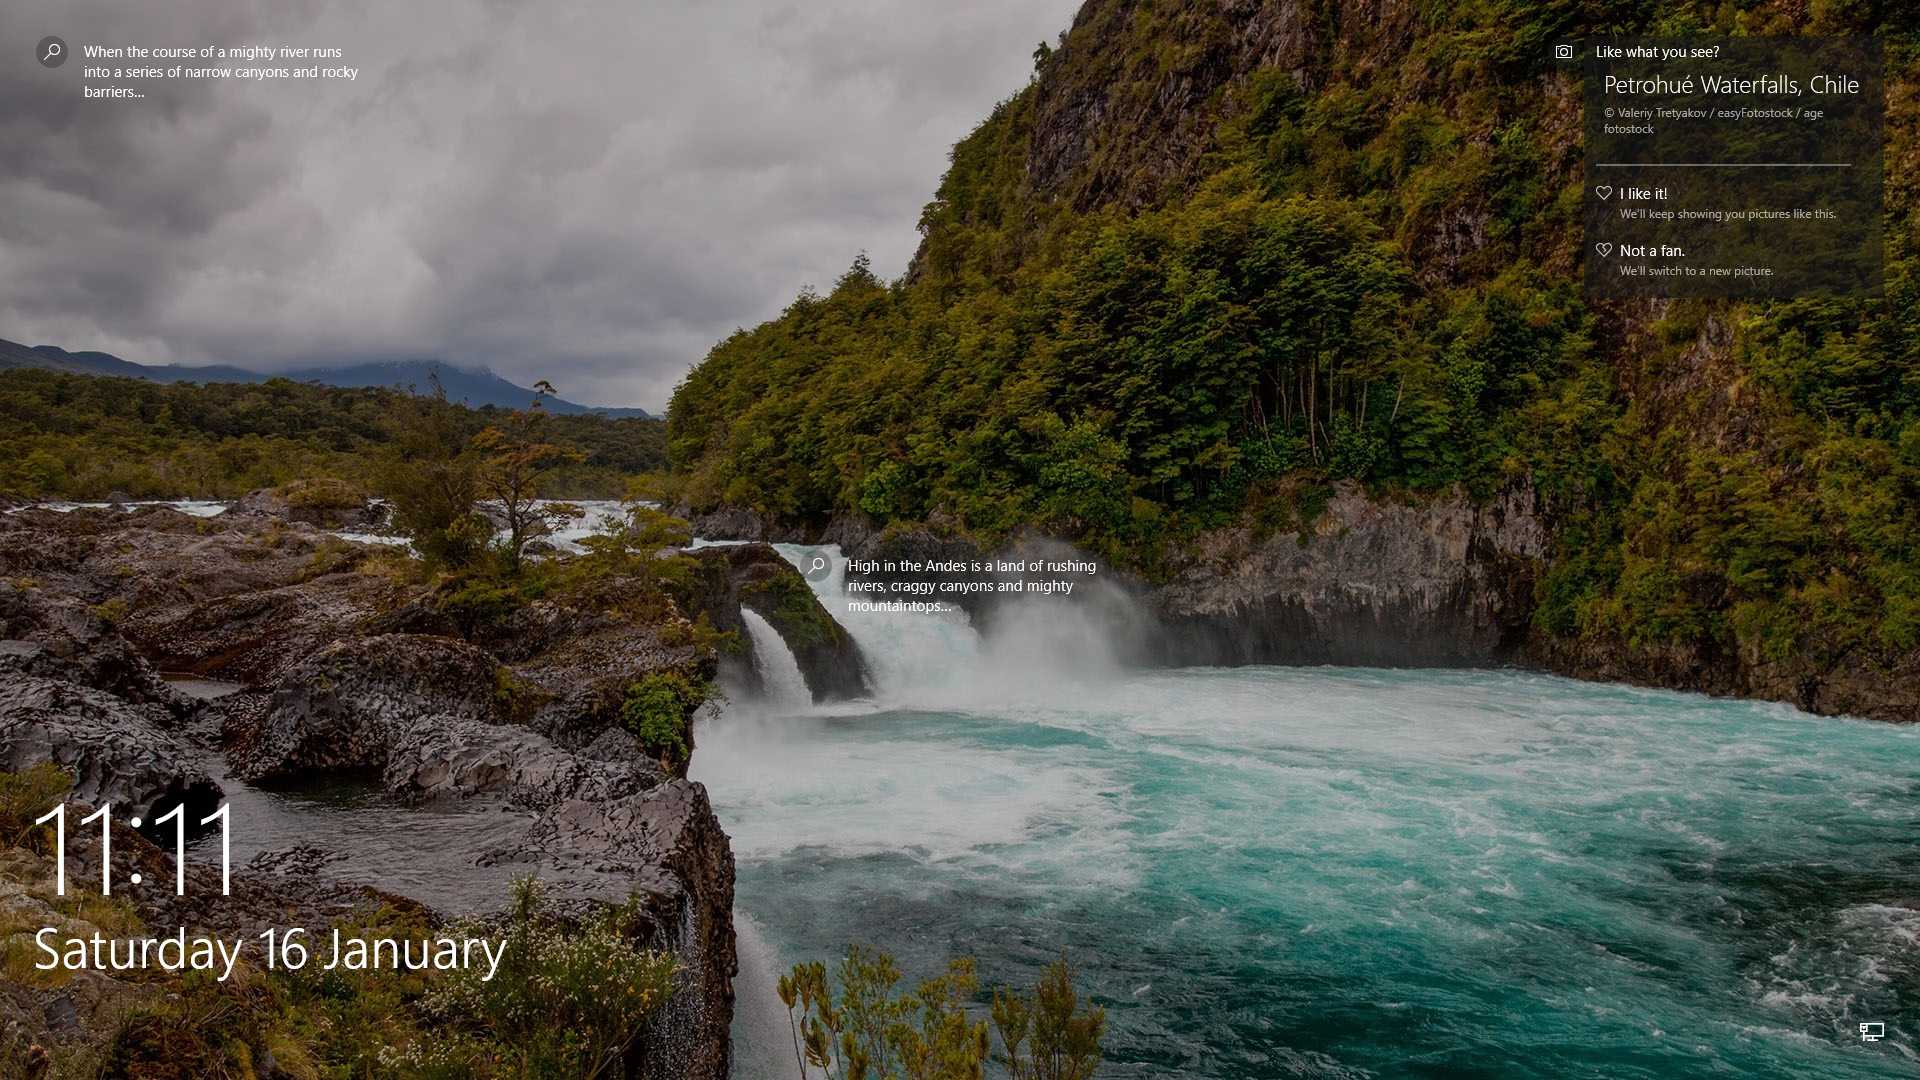 Petrohue-waterfalls-in-vicente-perez-rosales-national-park-Chile